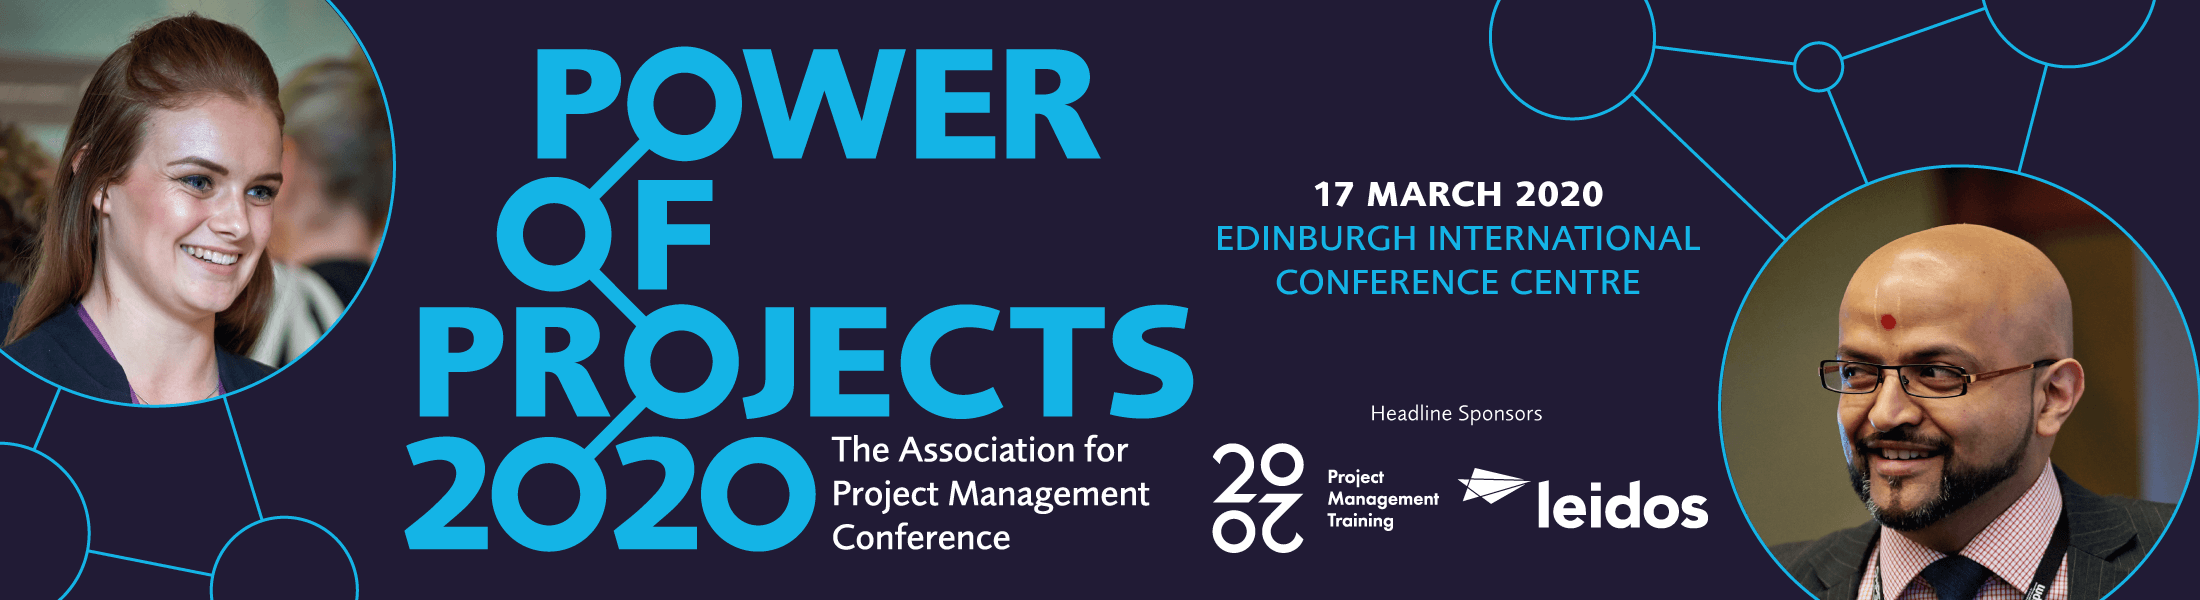 APM Conference 2020 - Power of Projects - Edinburgh